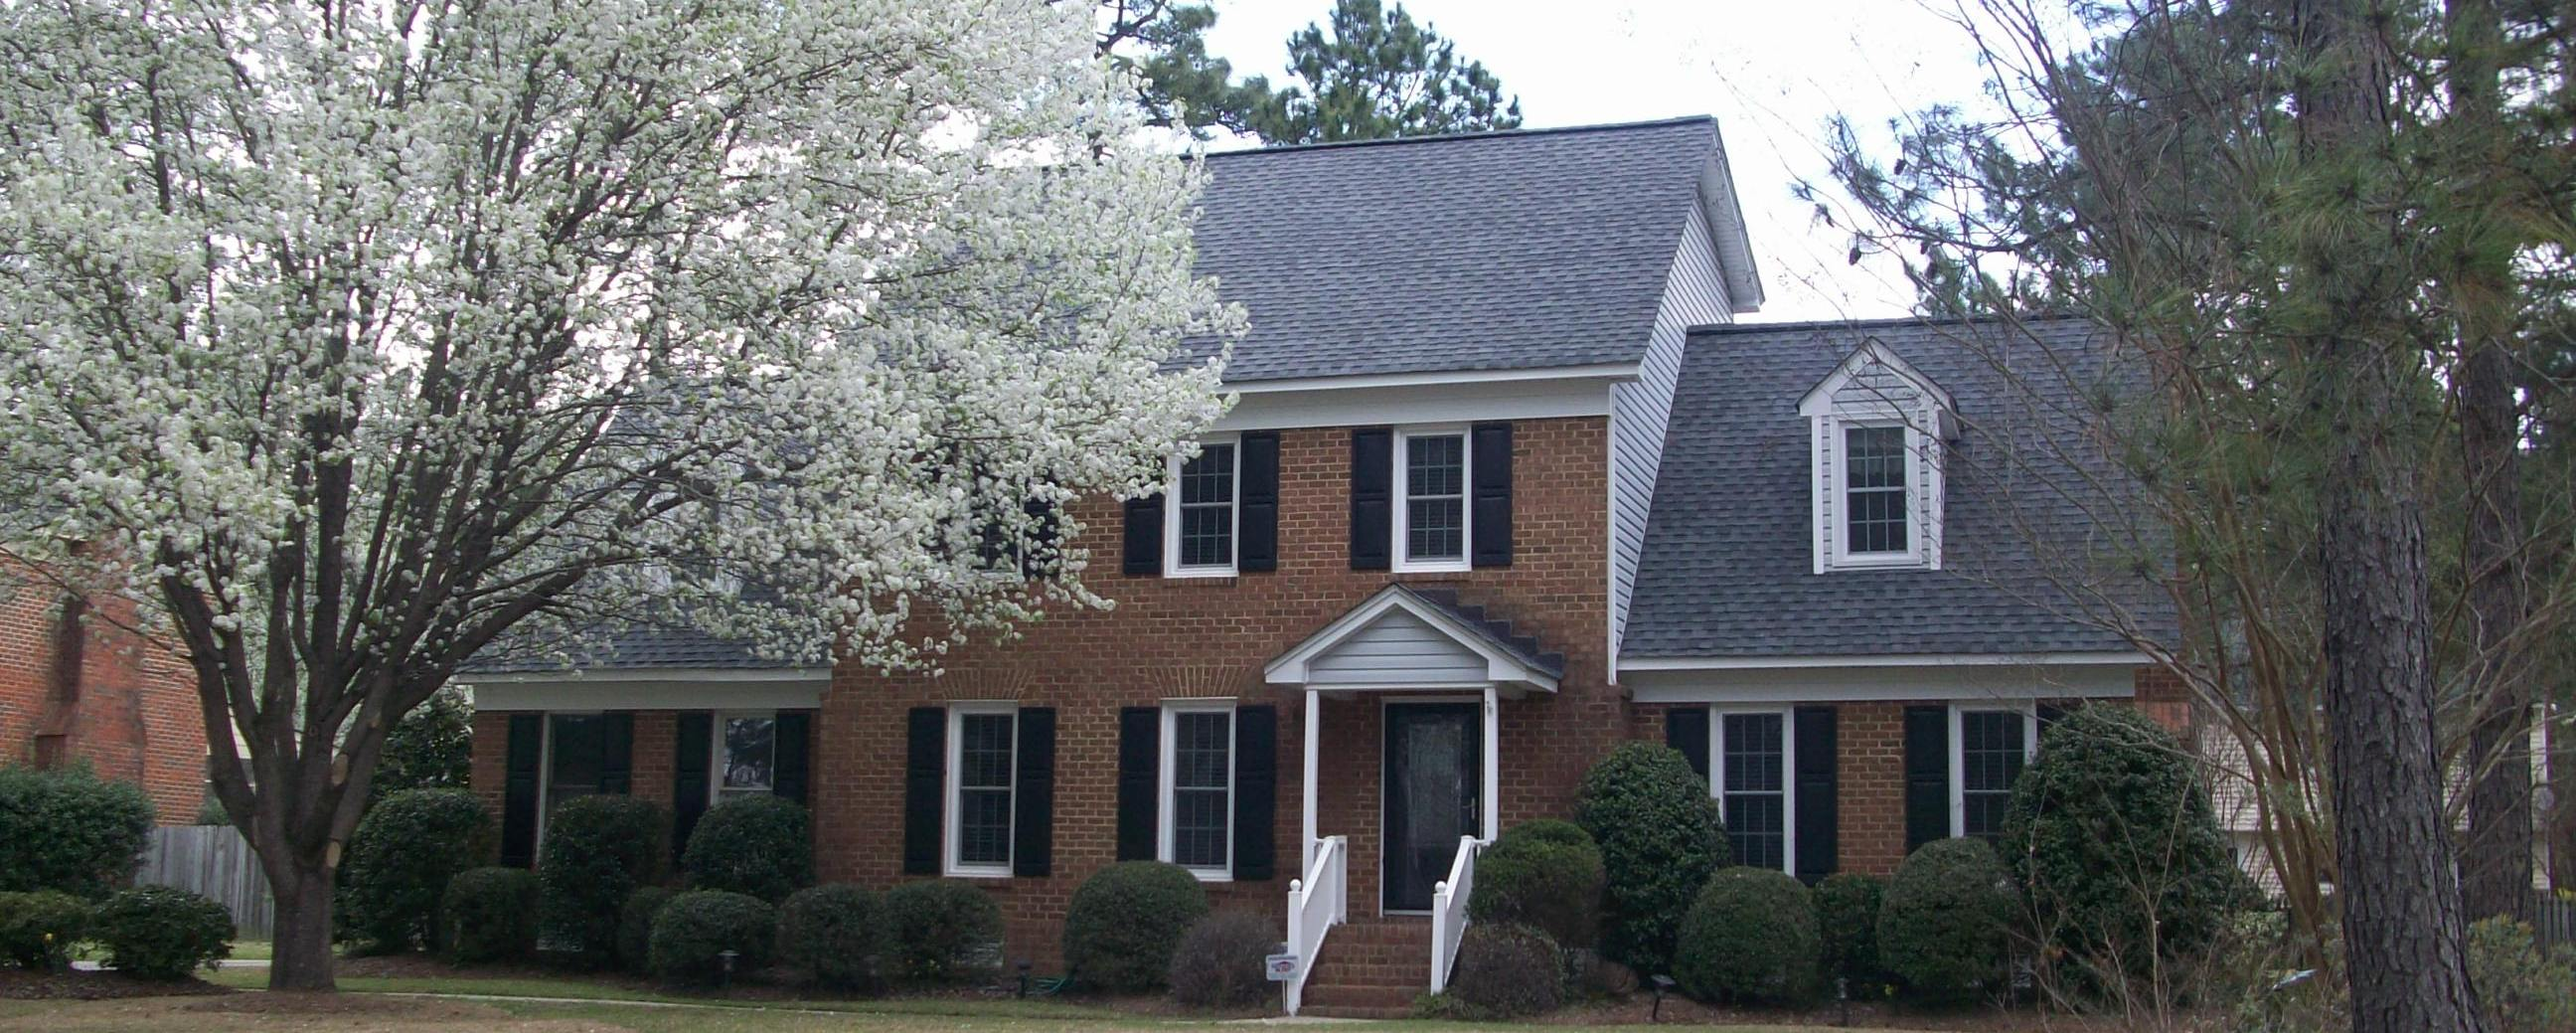 Great Deal Greenville Nc Real Estate Greenville Nc